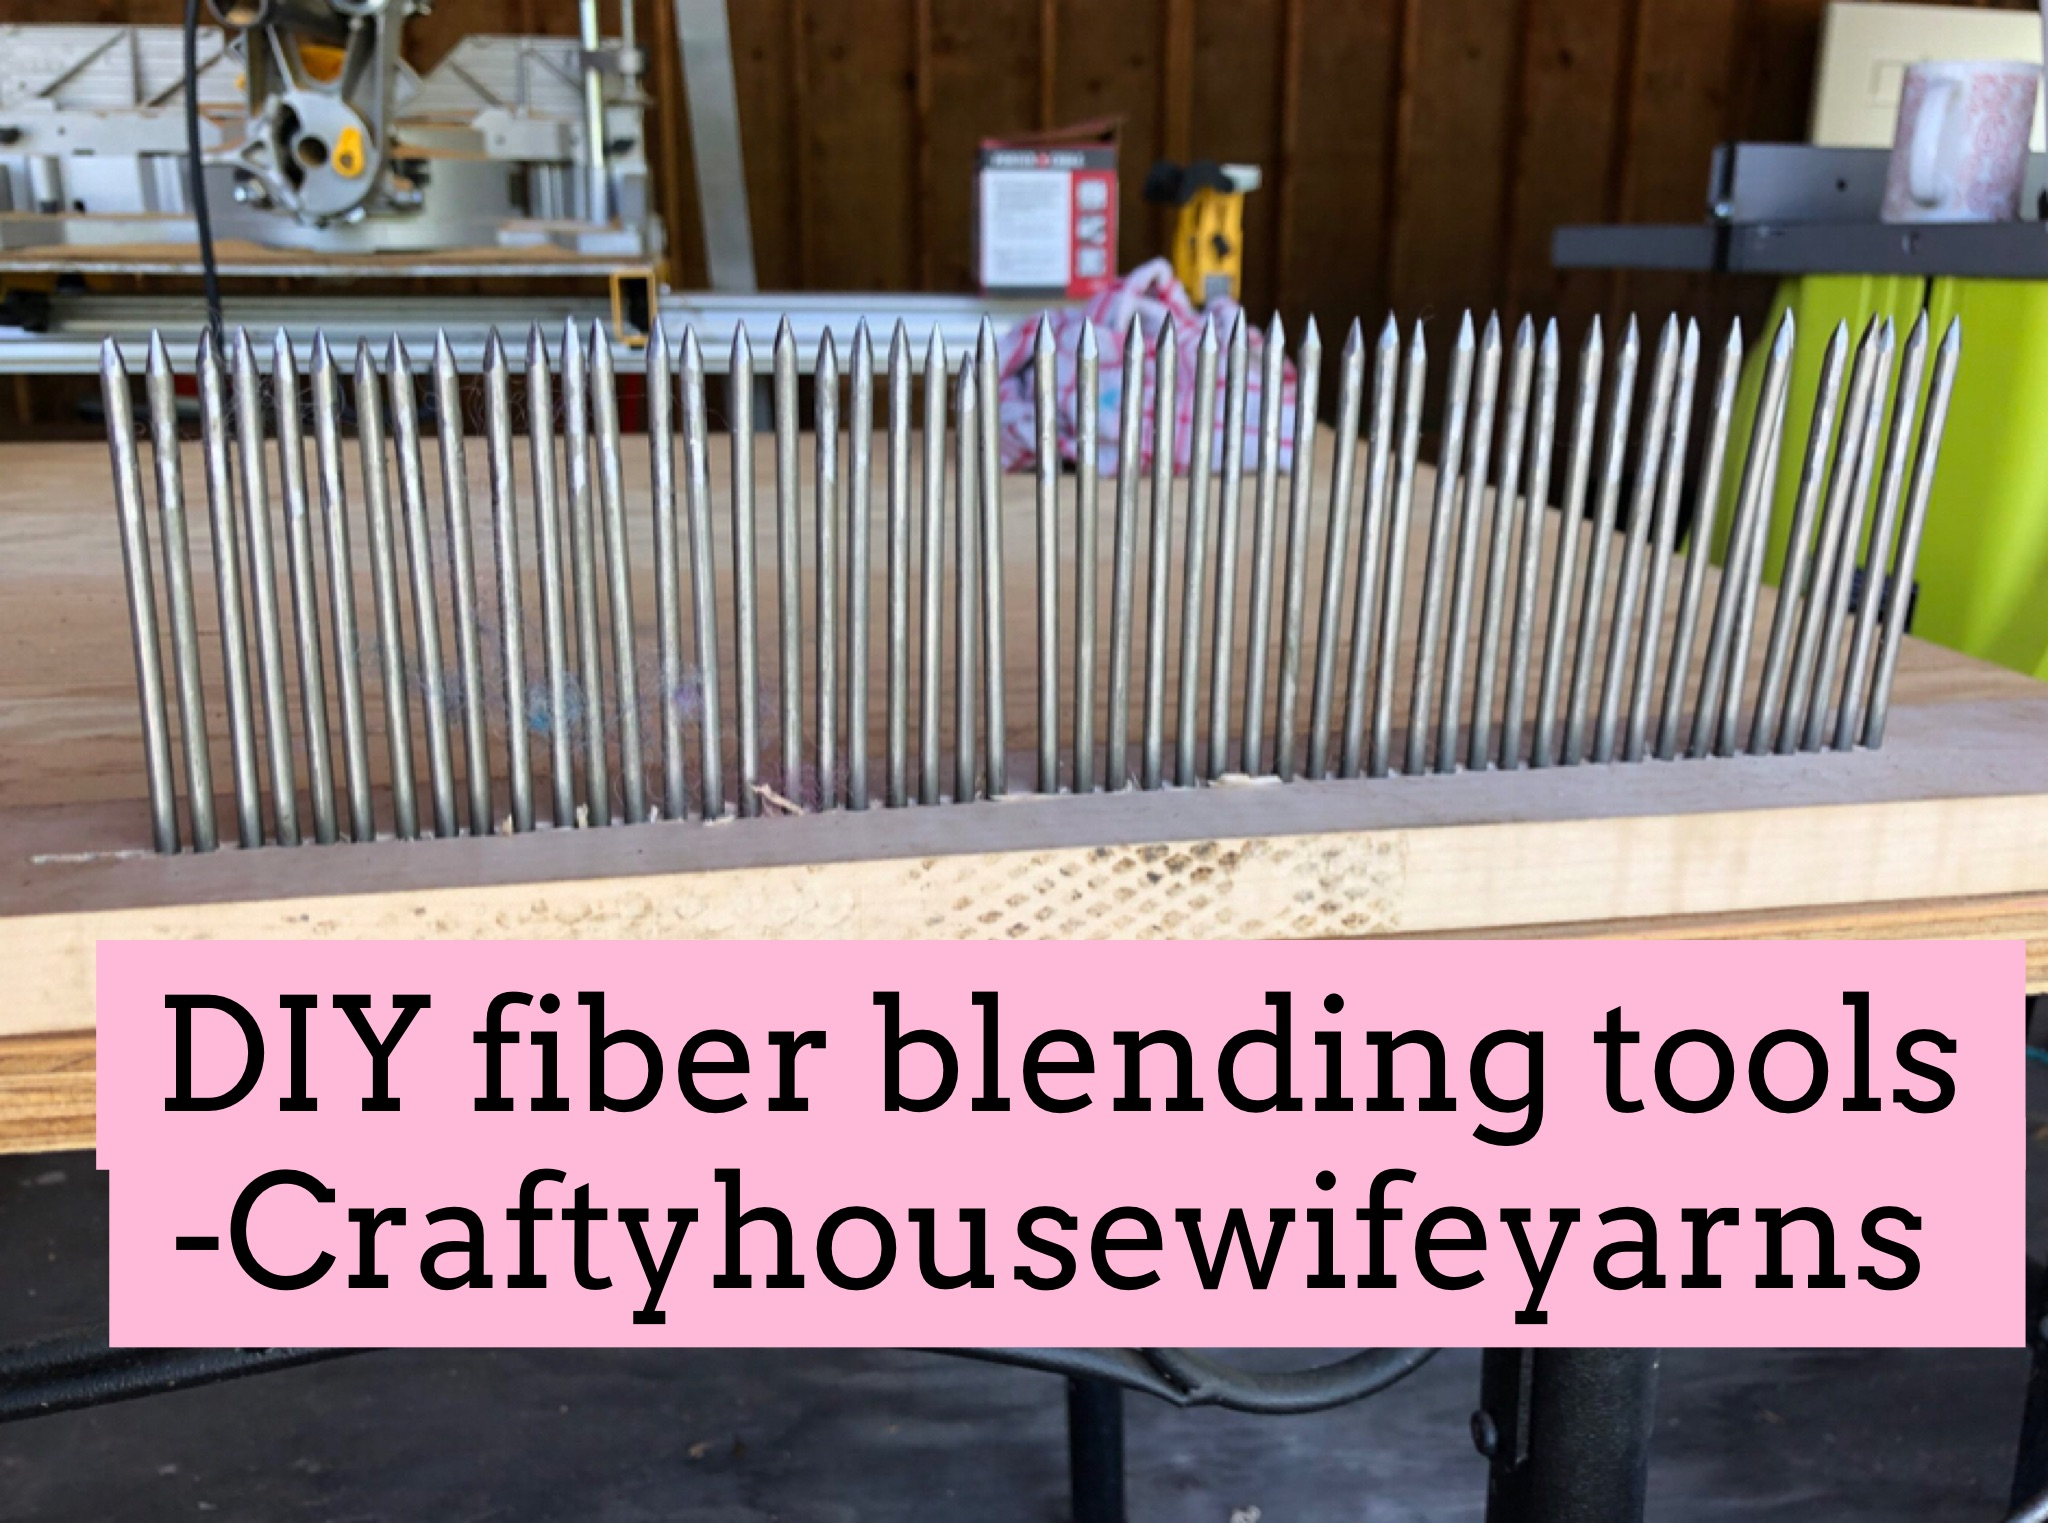 DIY fiber blending tools blog post